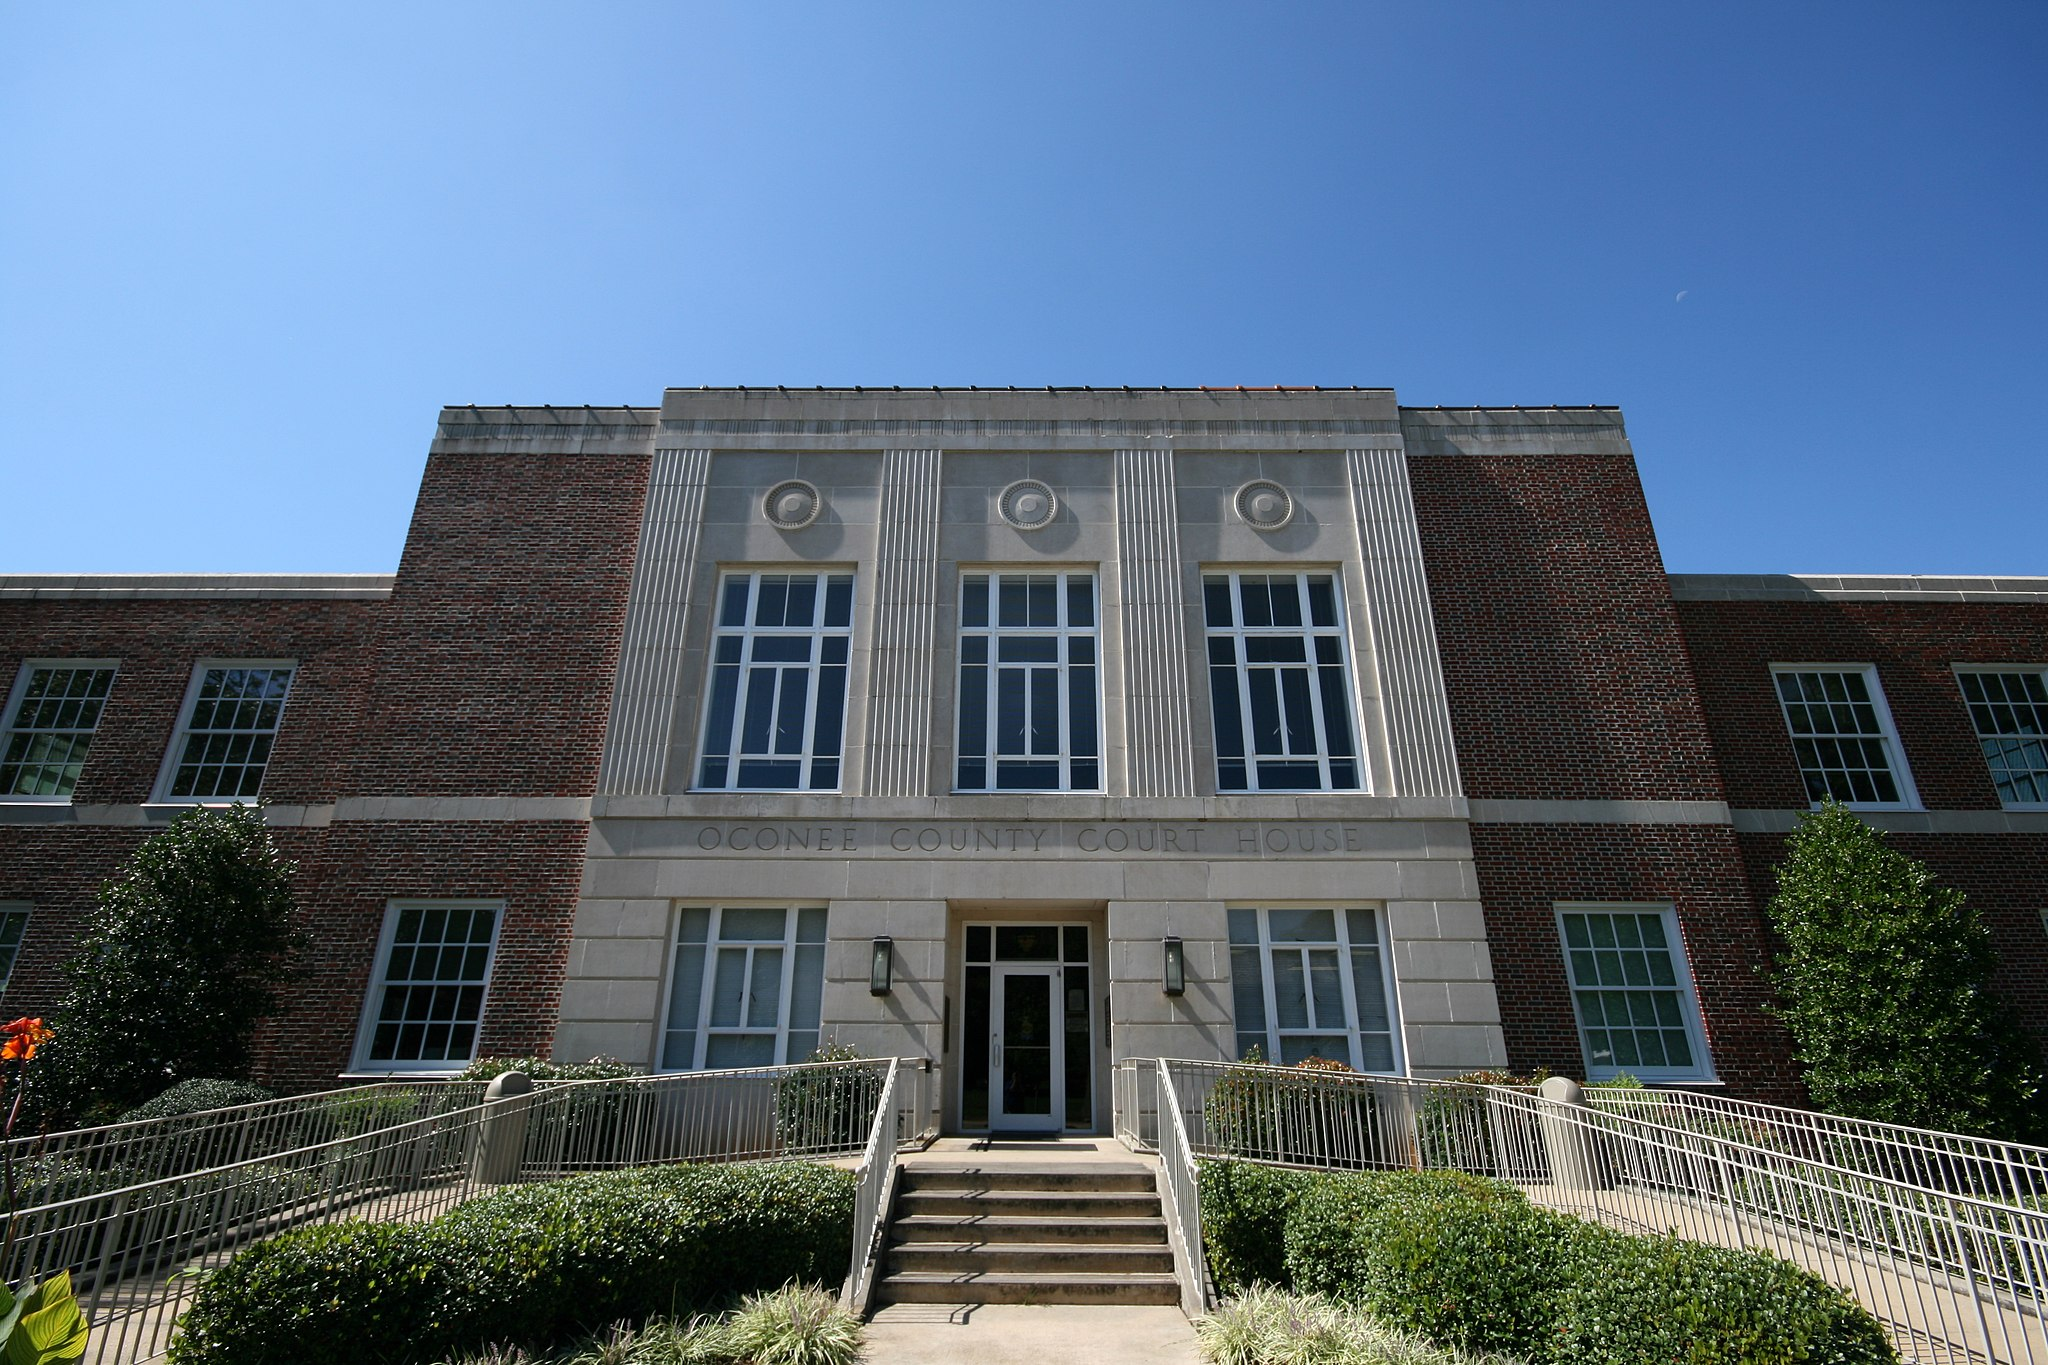 Oconee County Georgia Courthouse